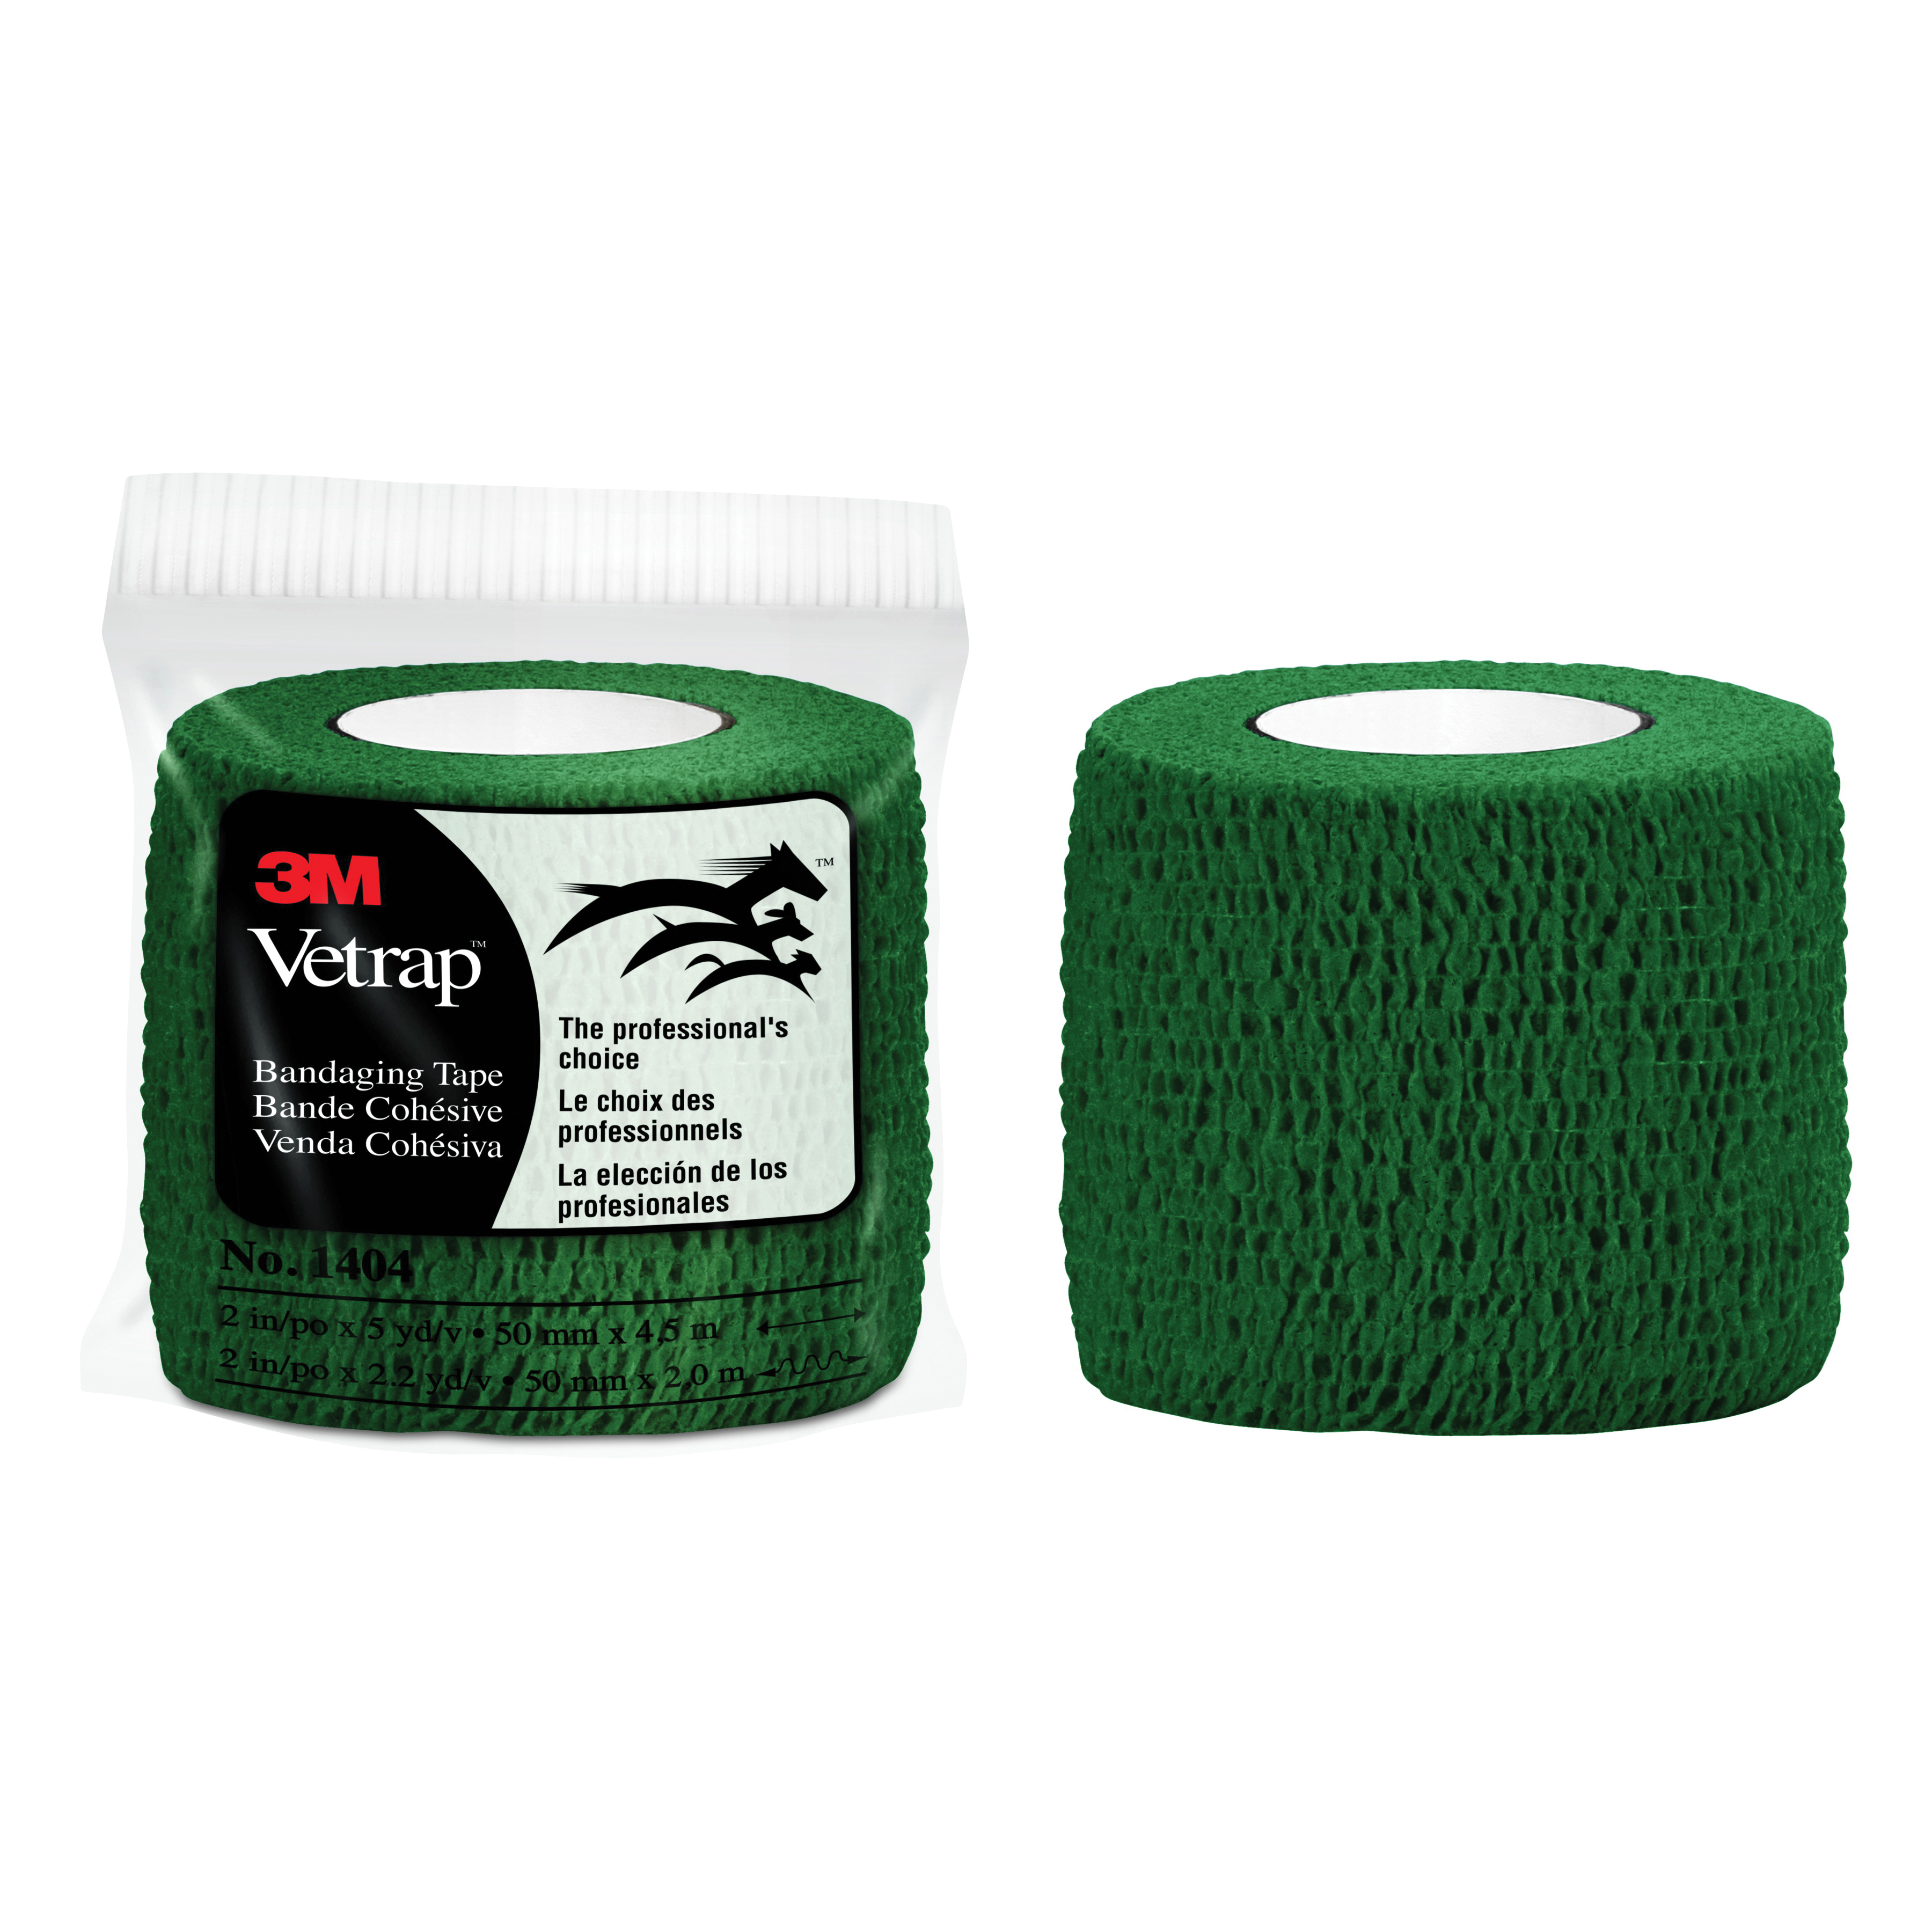 3M™ Vetrap™ 051115-04854 1404 Bandaging Tape, Self-Adherent Elastic Wrap, Hunter Green